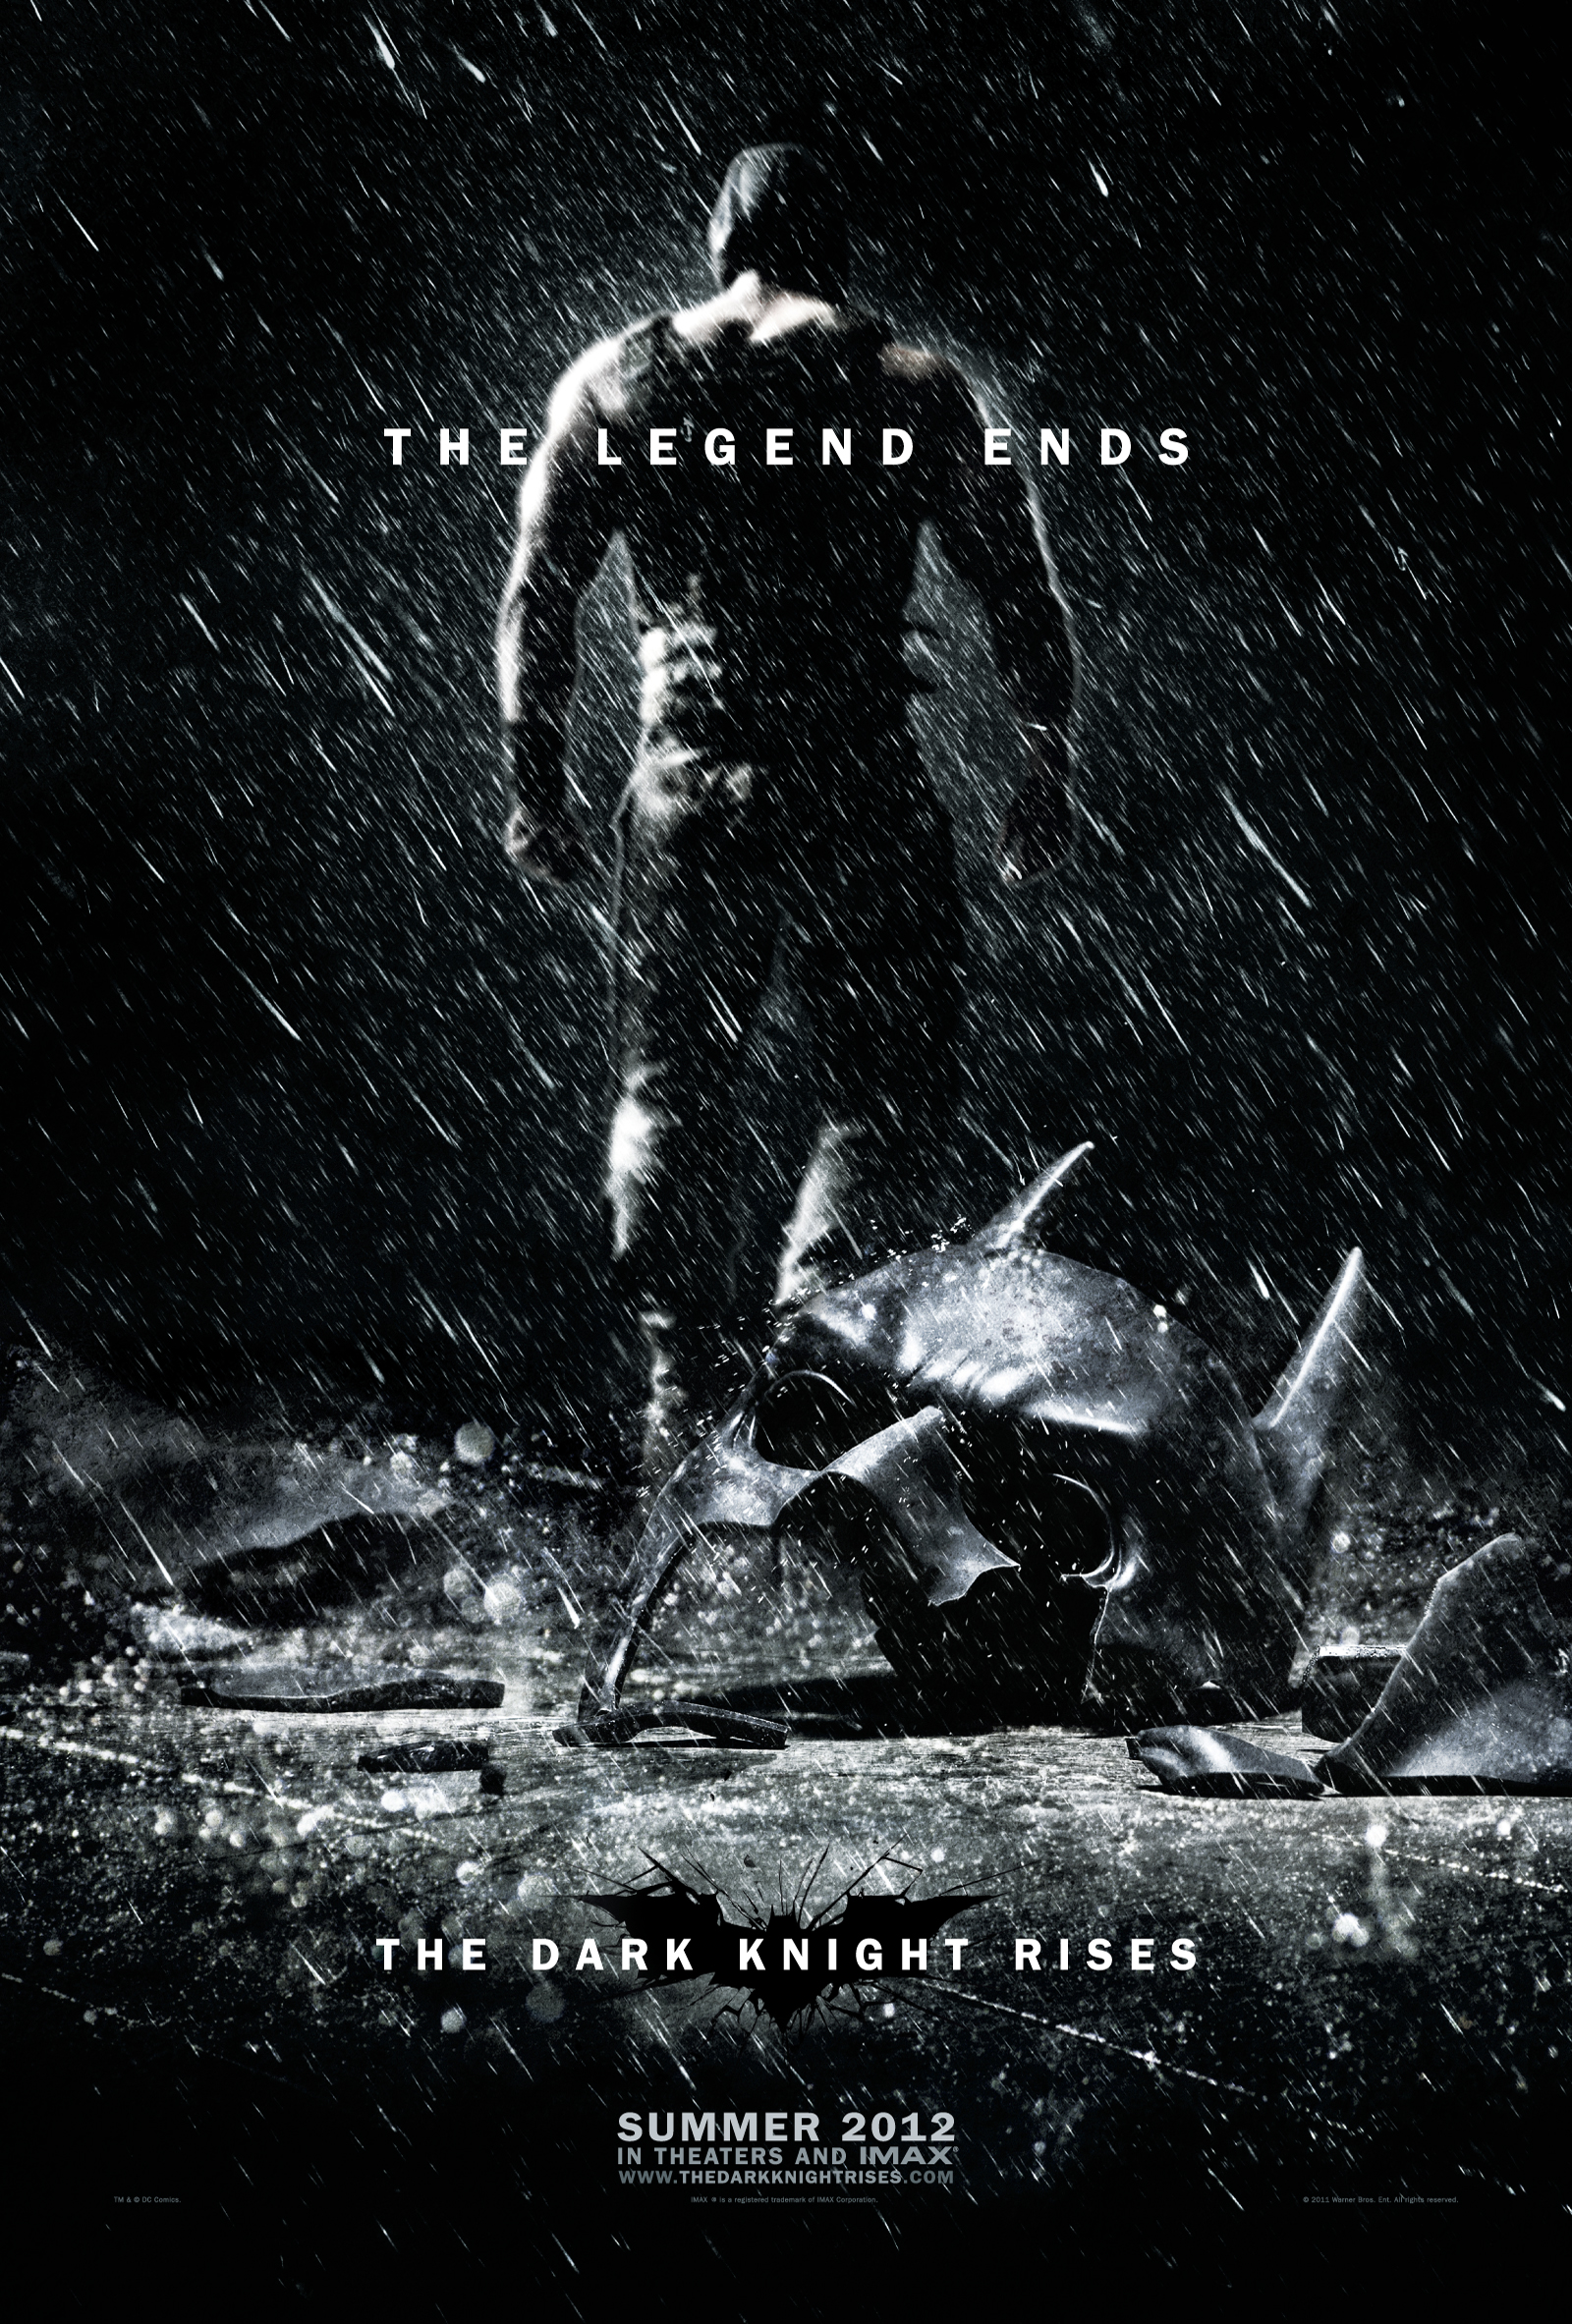 dark knight rises poster, dark knight rises, batman poster